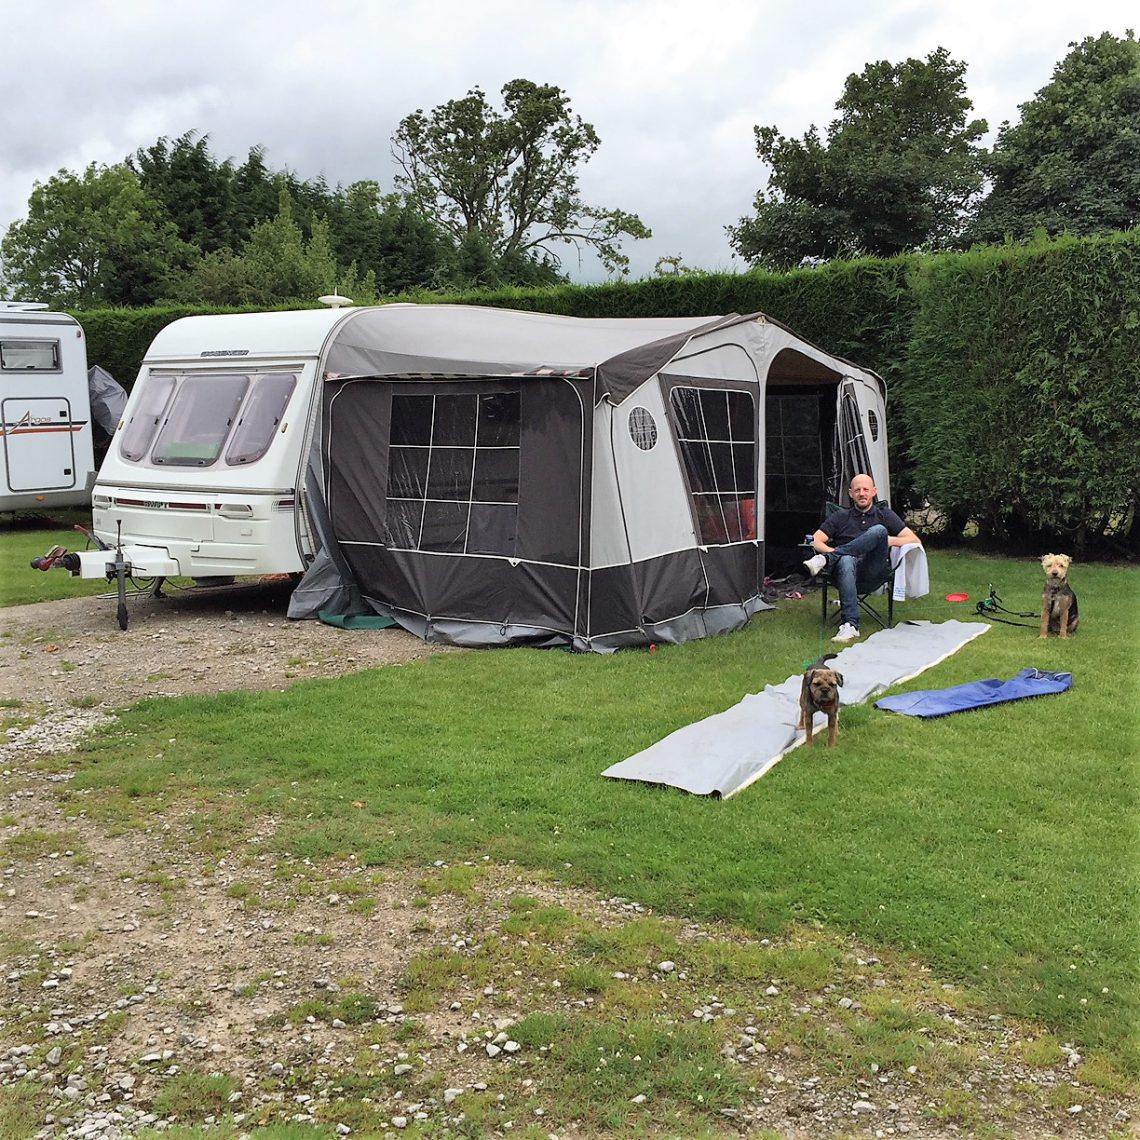 1994 Swift Challenger at Callow Top Caravan Park